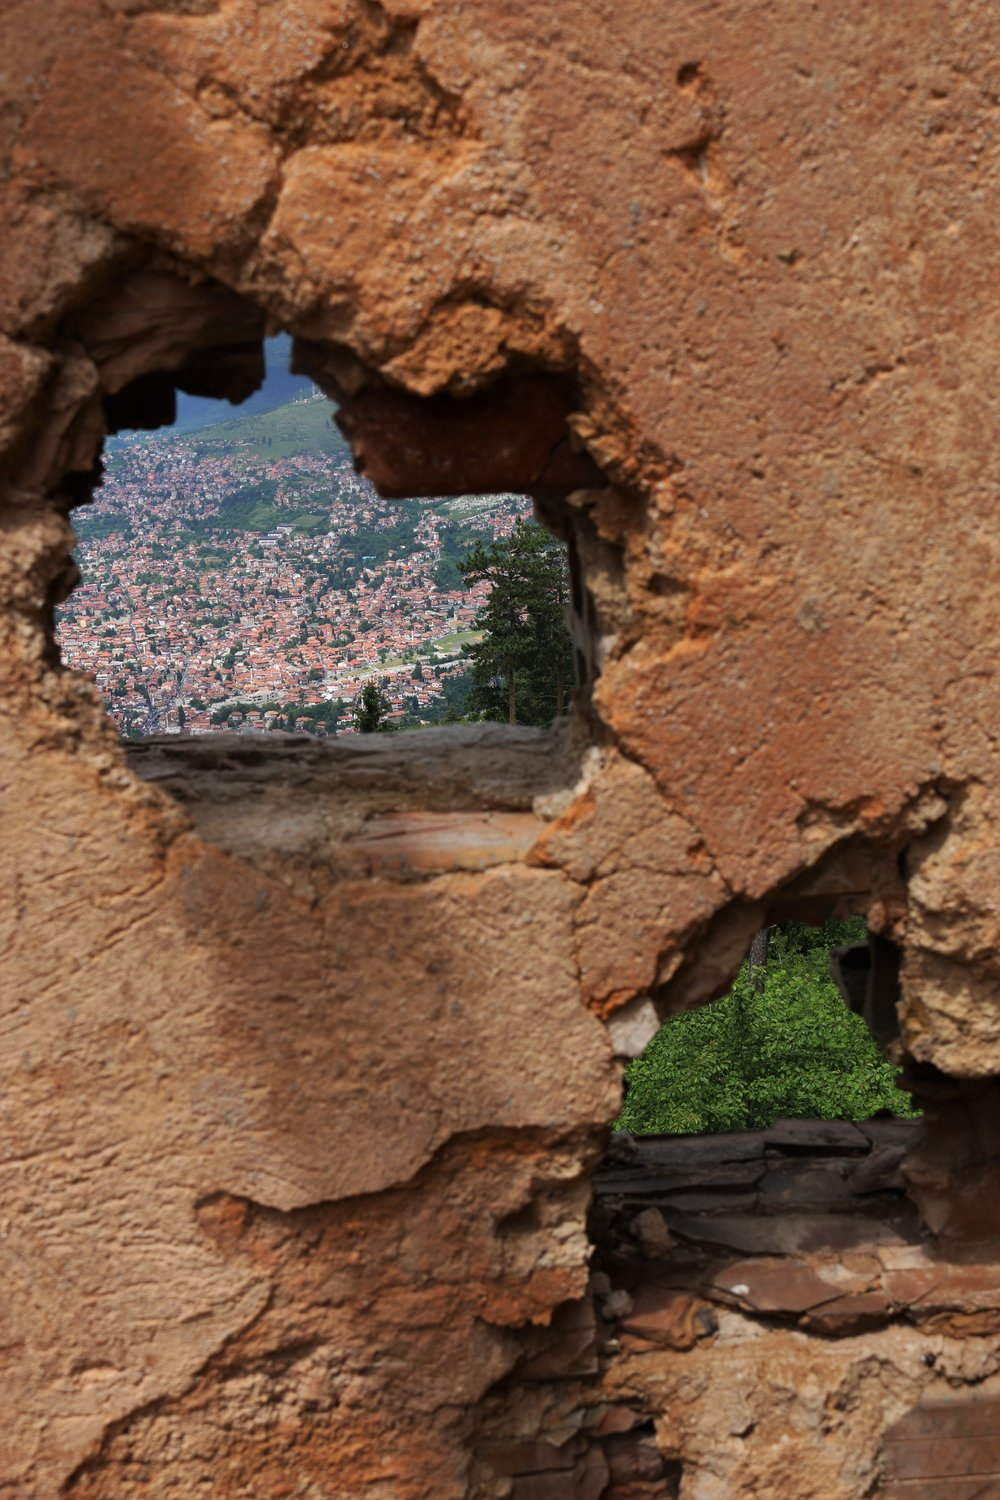 The city of Sarajevo seen through a shellhole on top of the city's destroyed observatory.